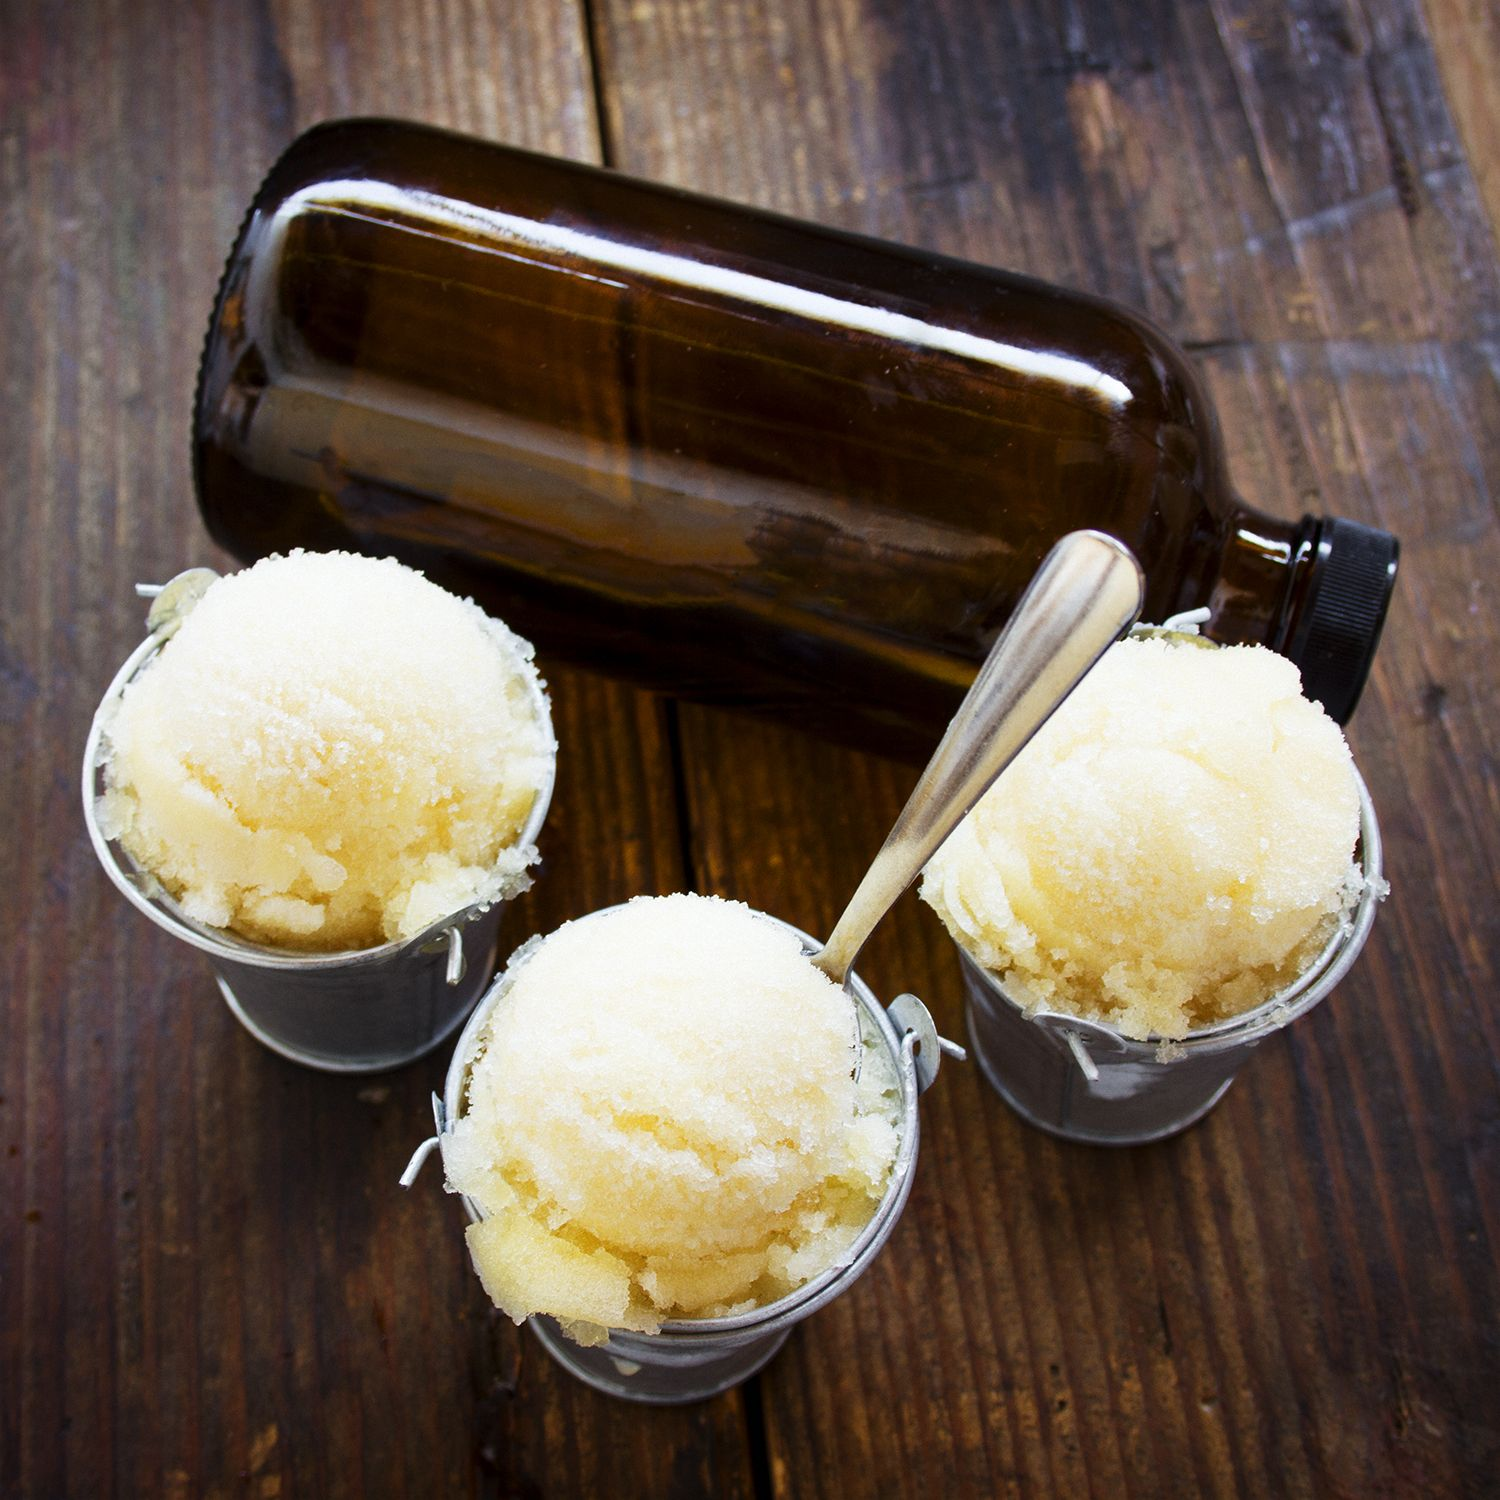 Looking for a late summer recipe? Try peach Kombucha sorbet! Simply pour the Kombucha into an ice-cream maker and watch the magic happen. The result will be a light and fresh sorbet that's perfect ...